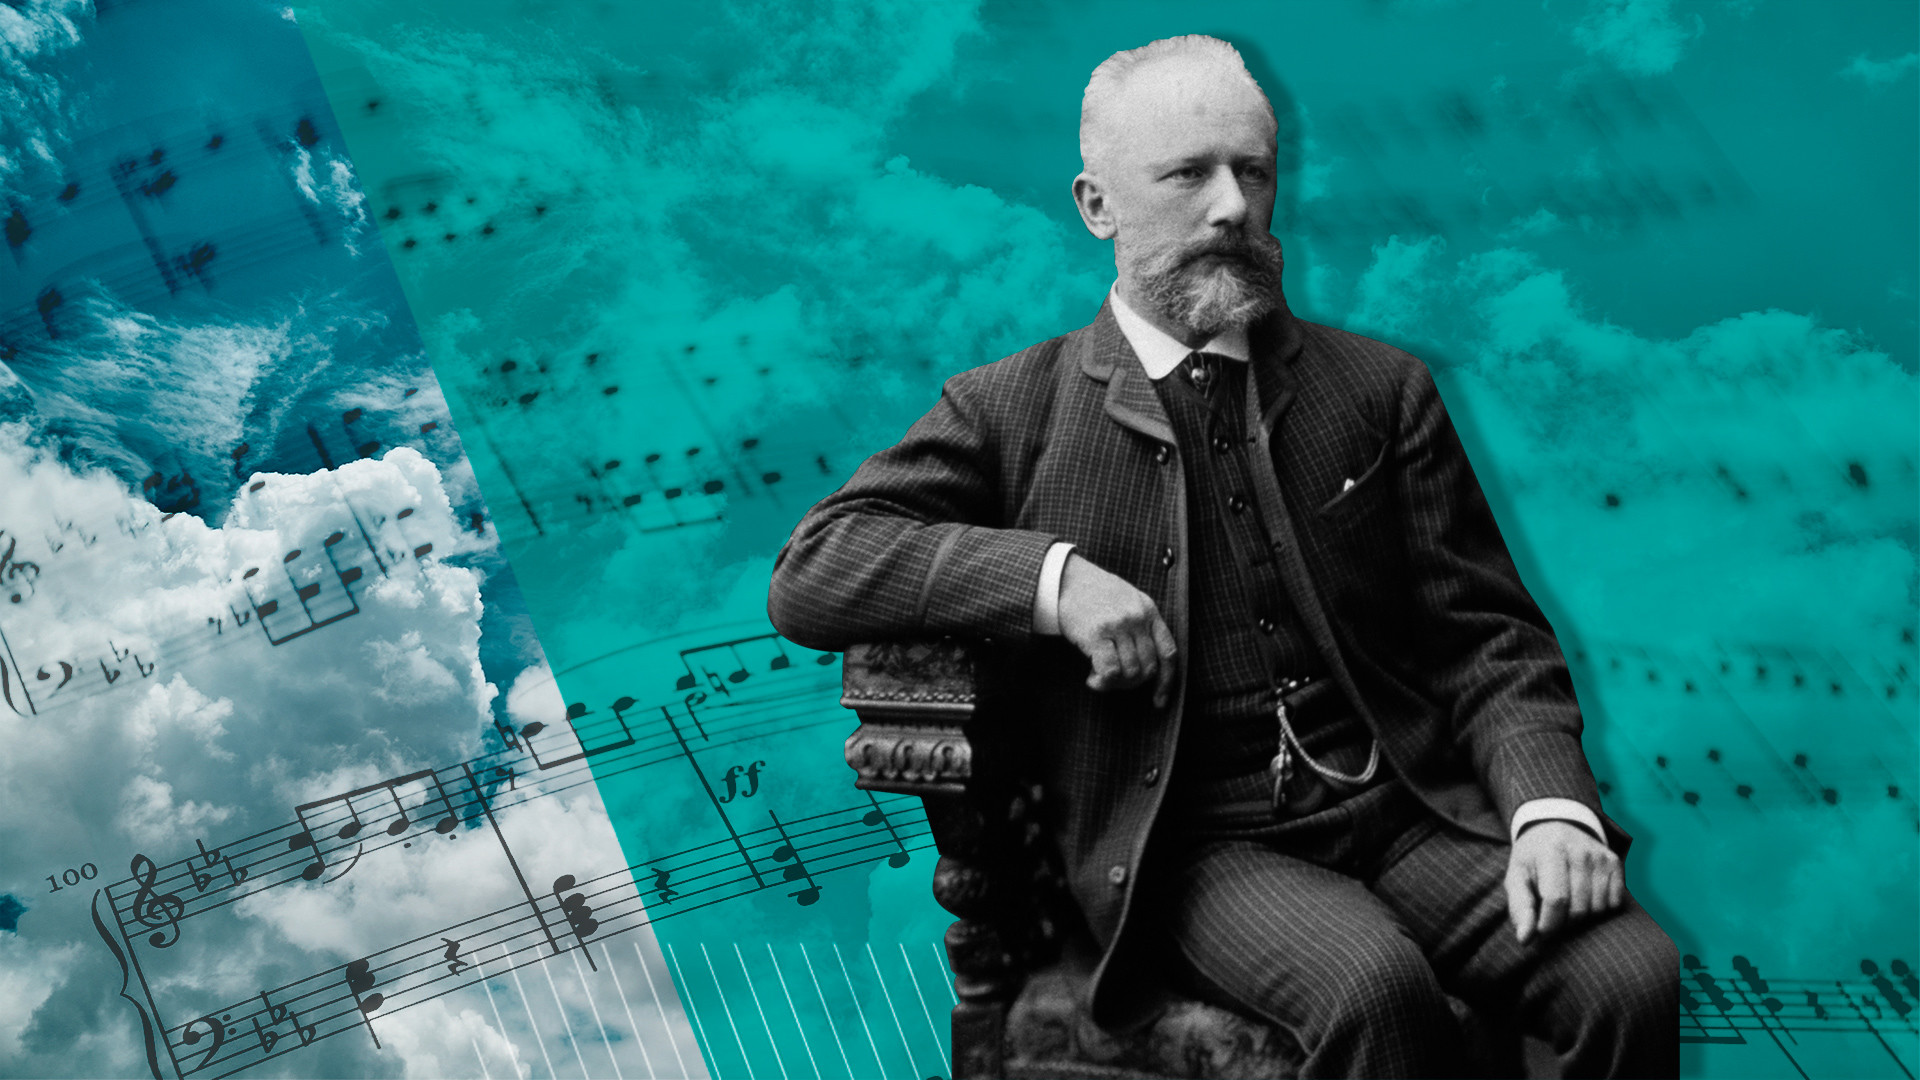 Pyotr Tchaikovsky: How a boy from the sticks became Russia's